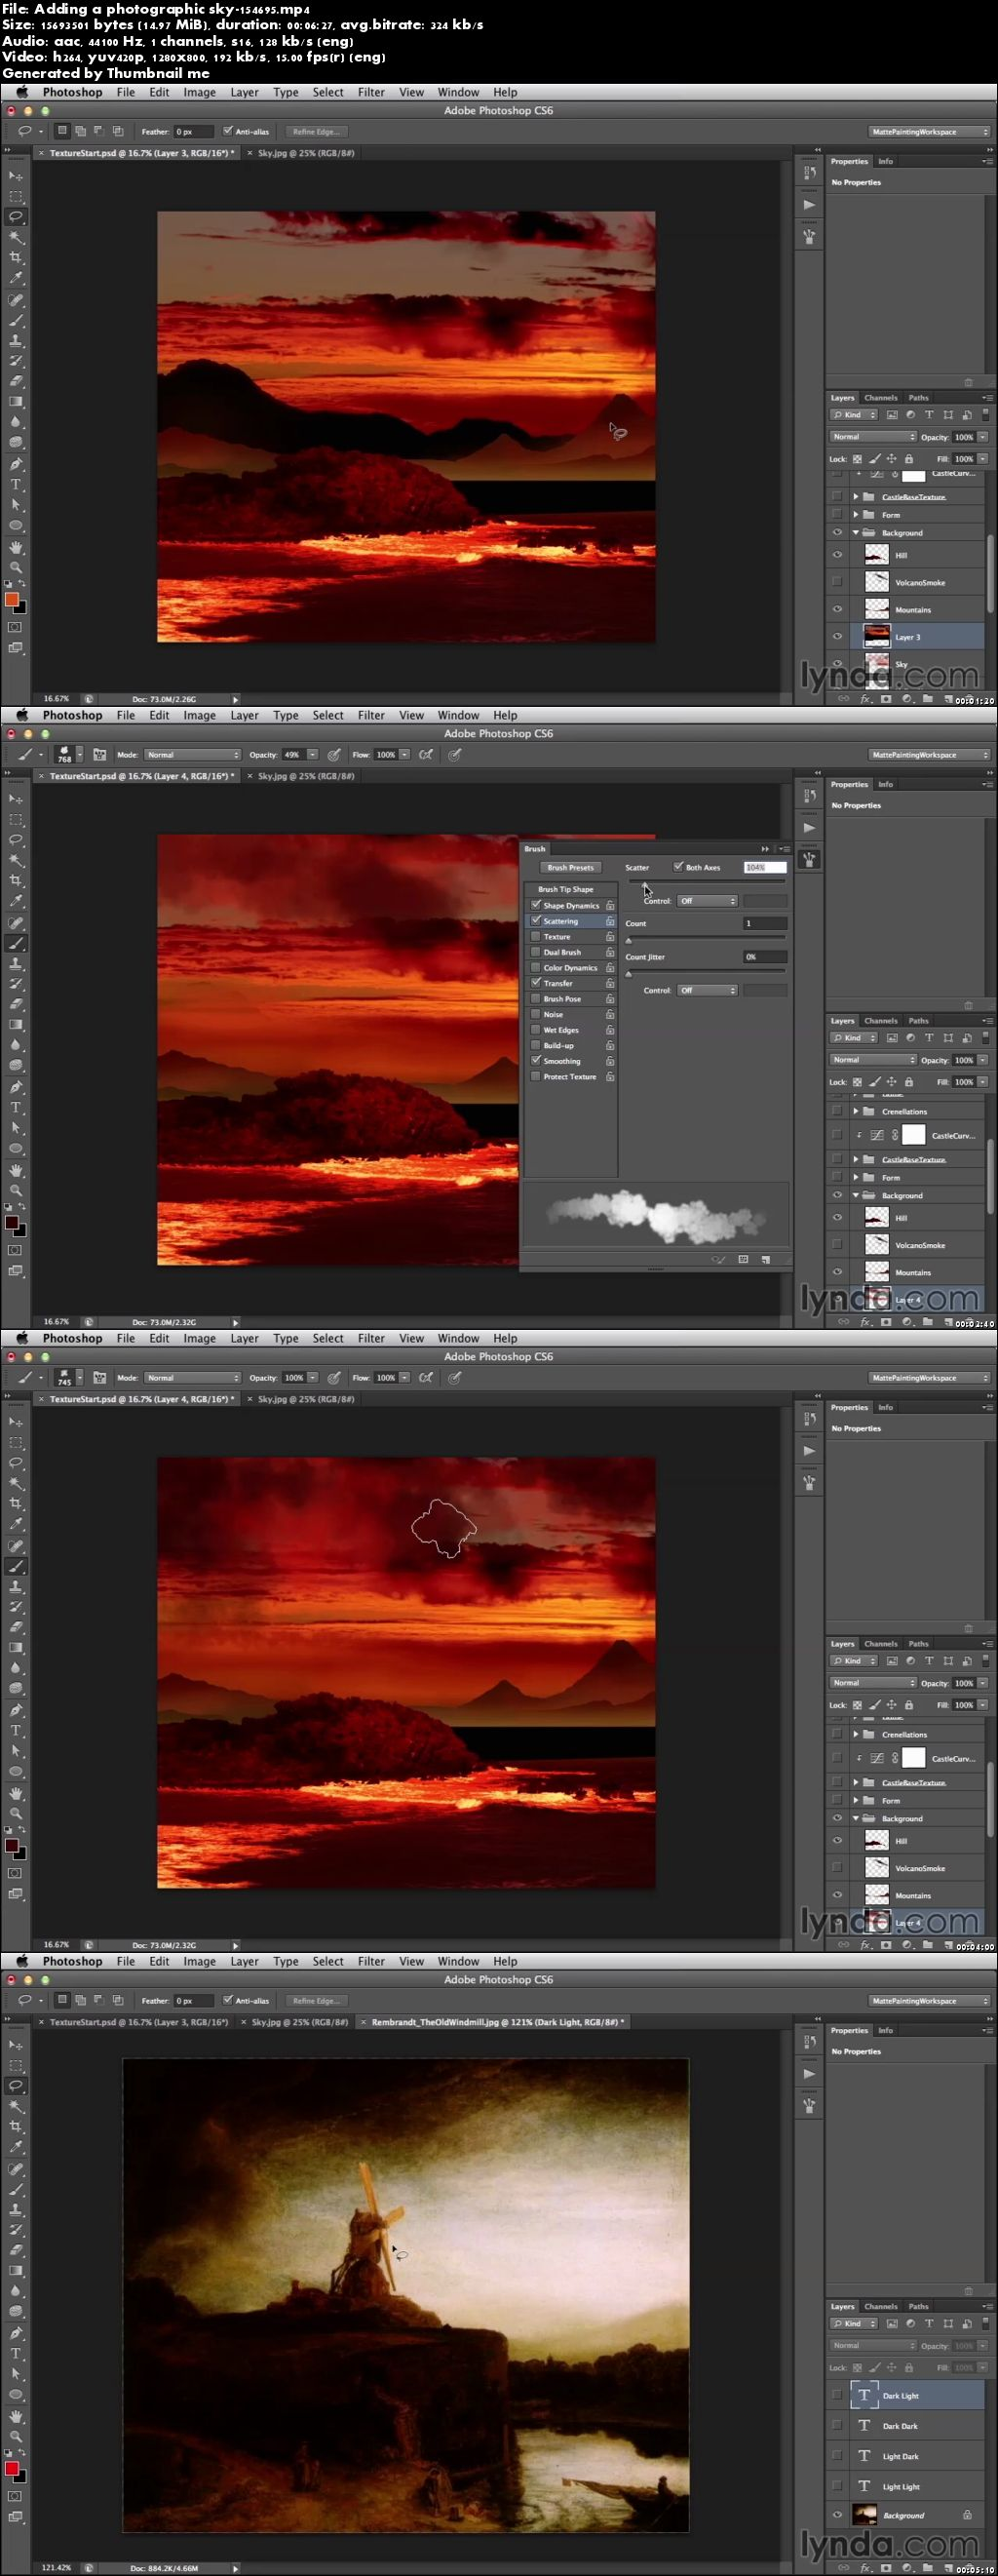 Lynda - Digital Matte Painting Essentials 4: Texturing